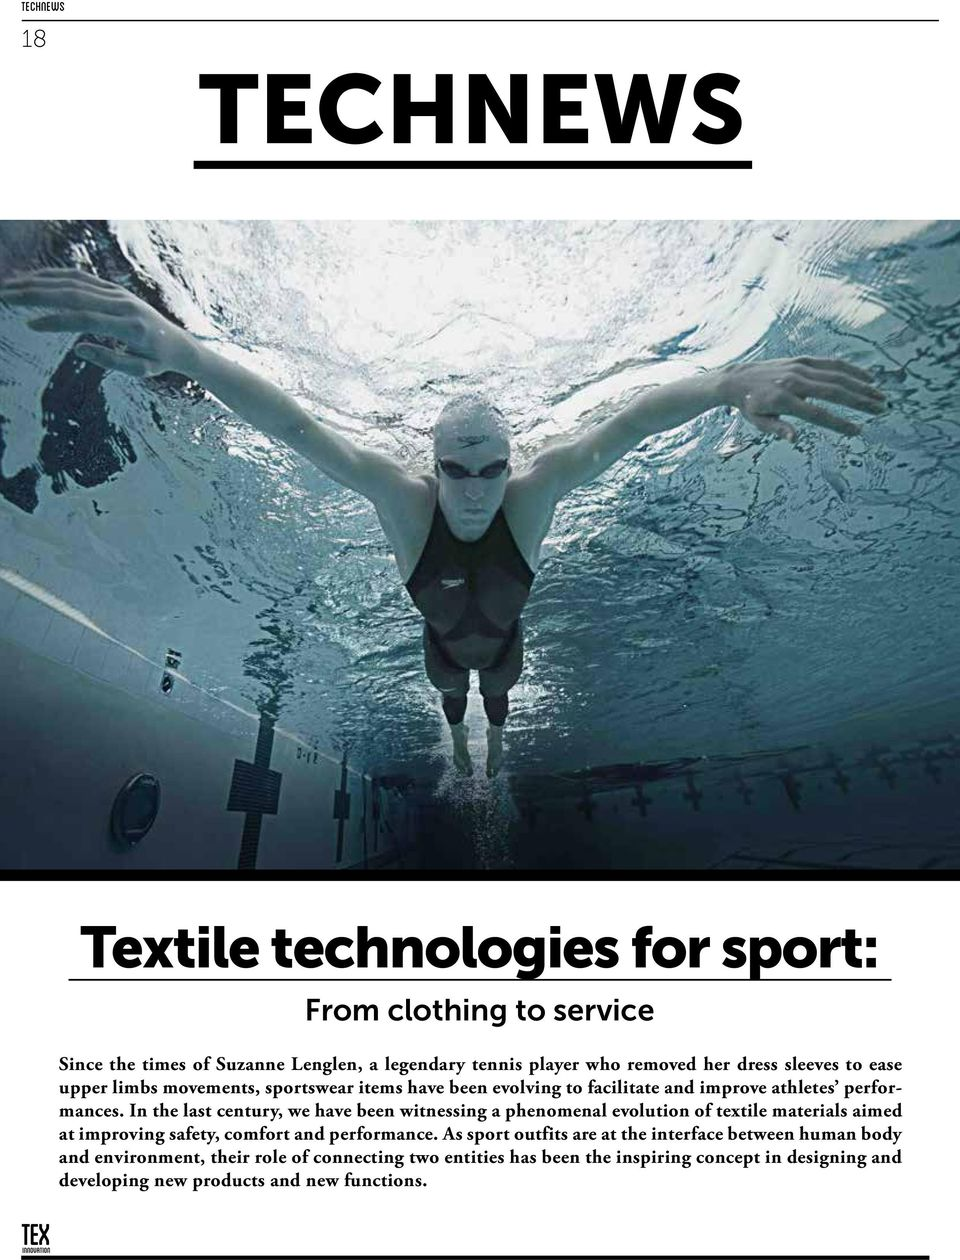 In the last century, we have been witnessing a phenomenal evolution of textile materials aimed at improving safety, comfort and performance.